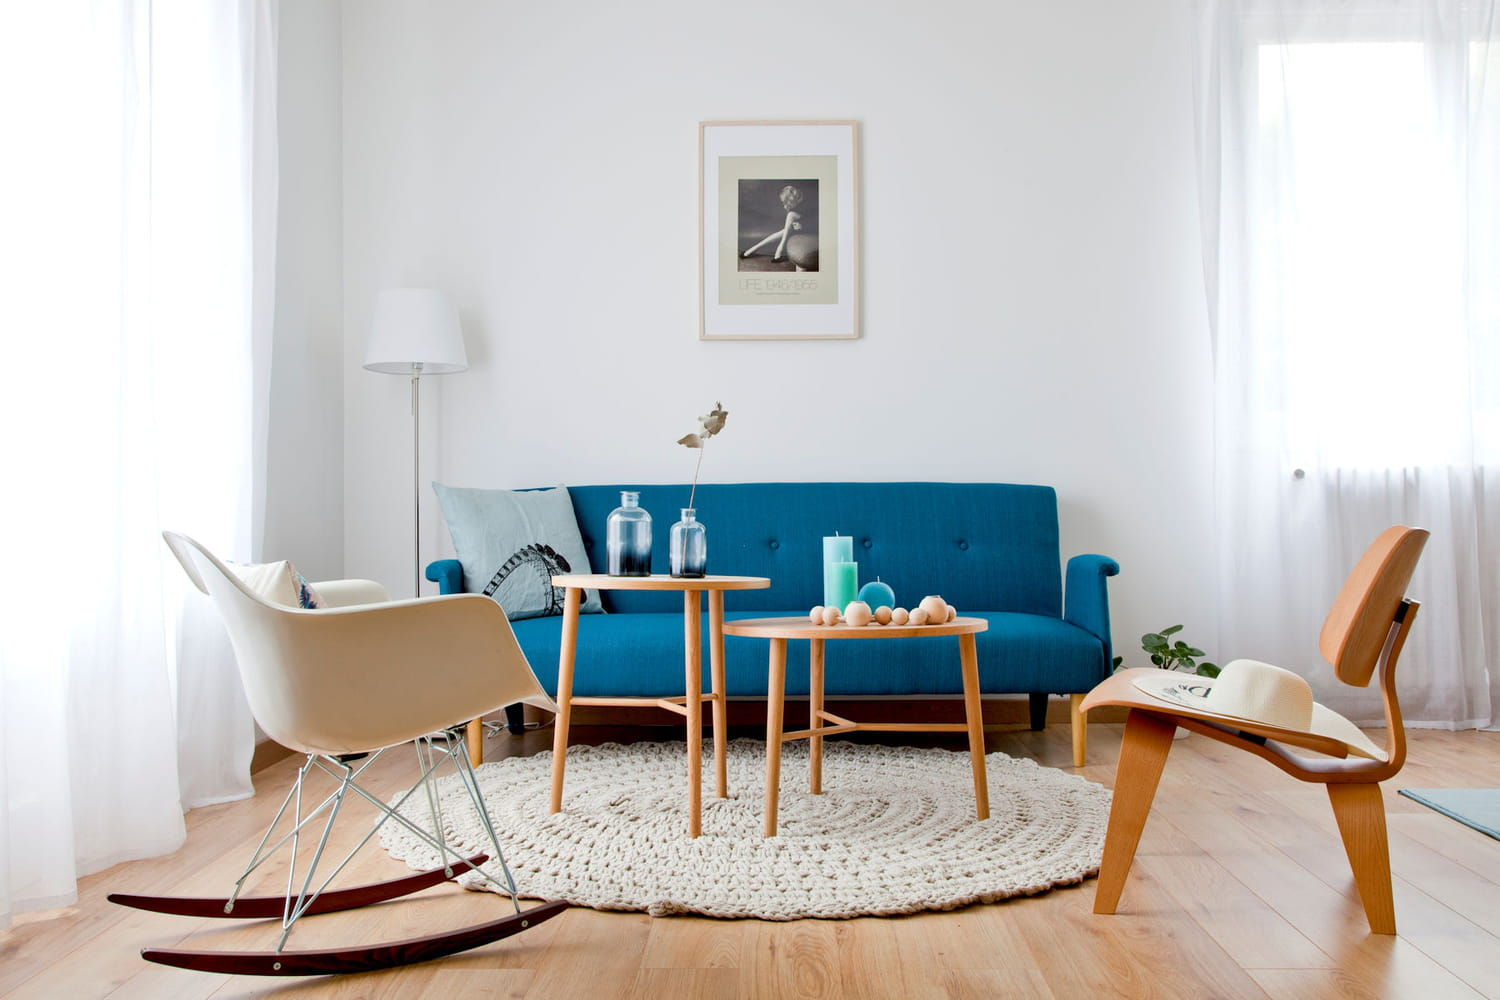 Salon scandinave: comment adopter le style cocooning nordique?